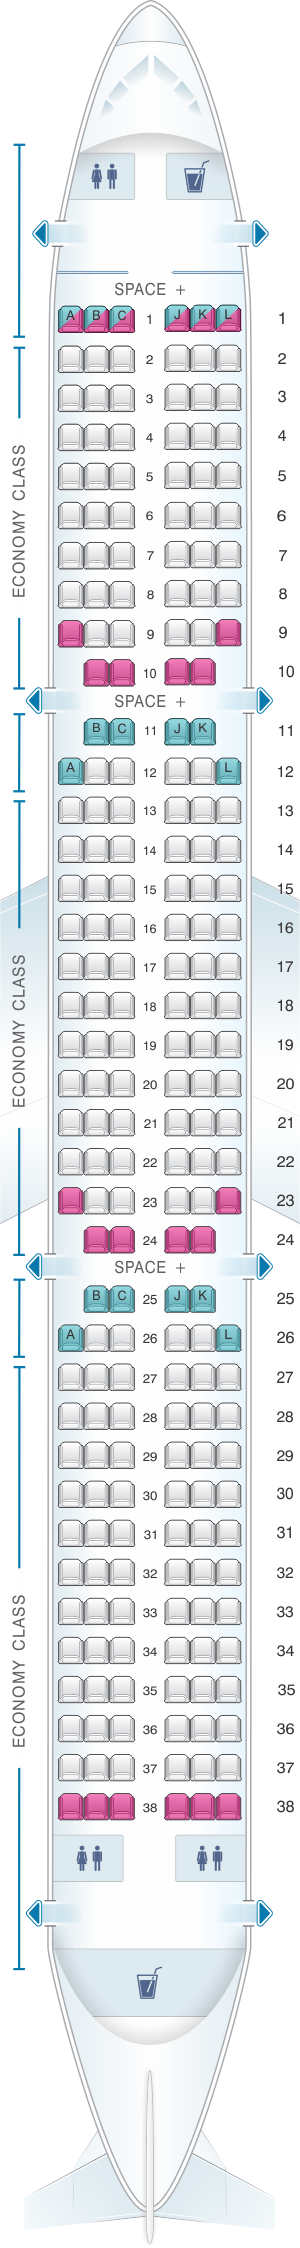 Seat map for LATAM Airlines Airbus A321